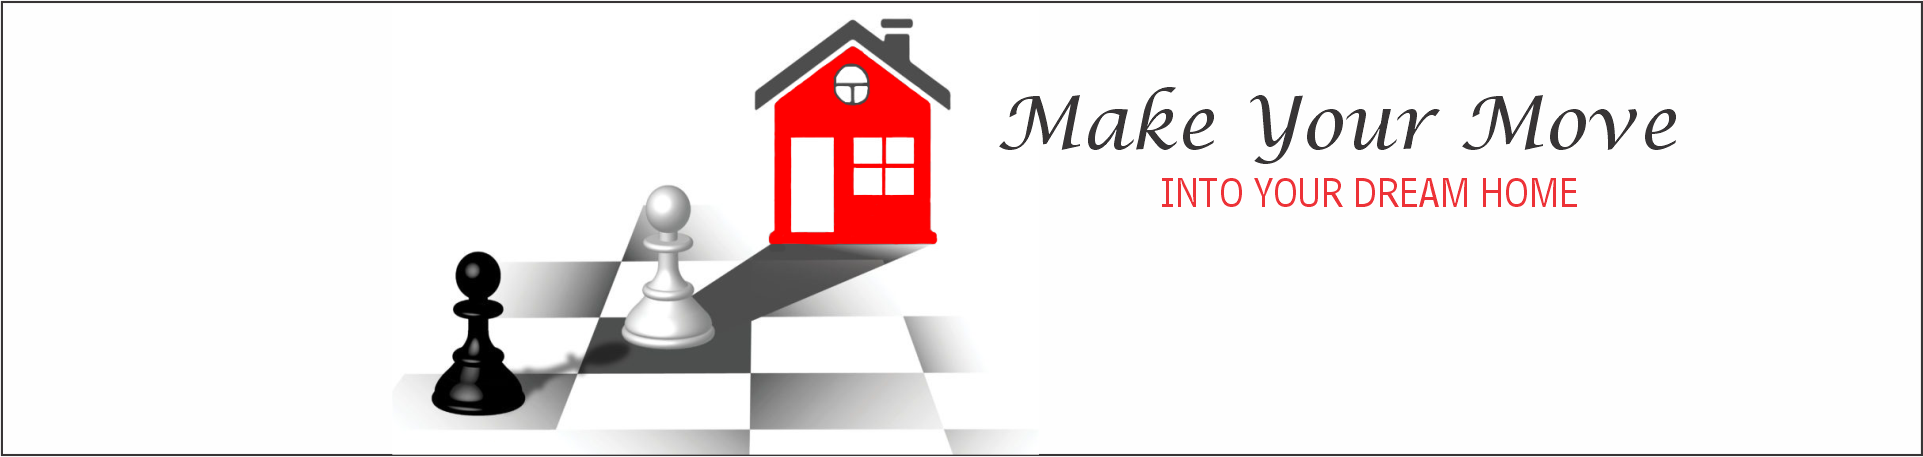 Make Your Next Move Into Your Dream Home